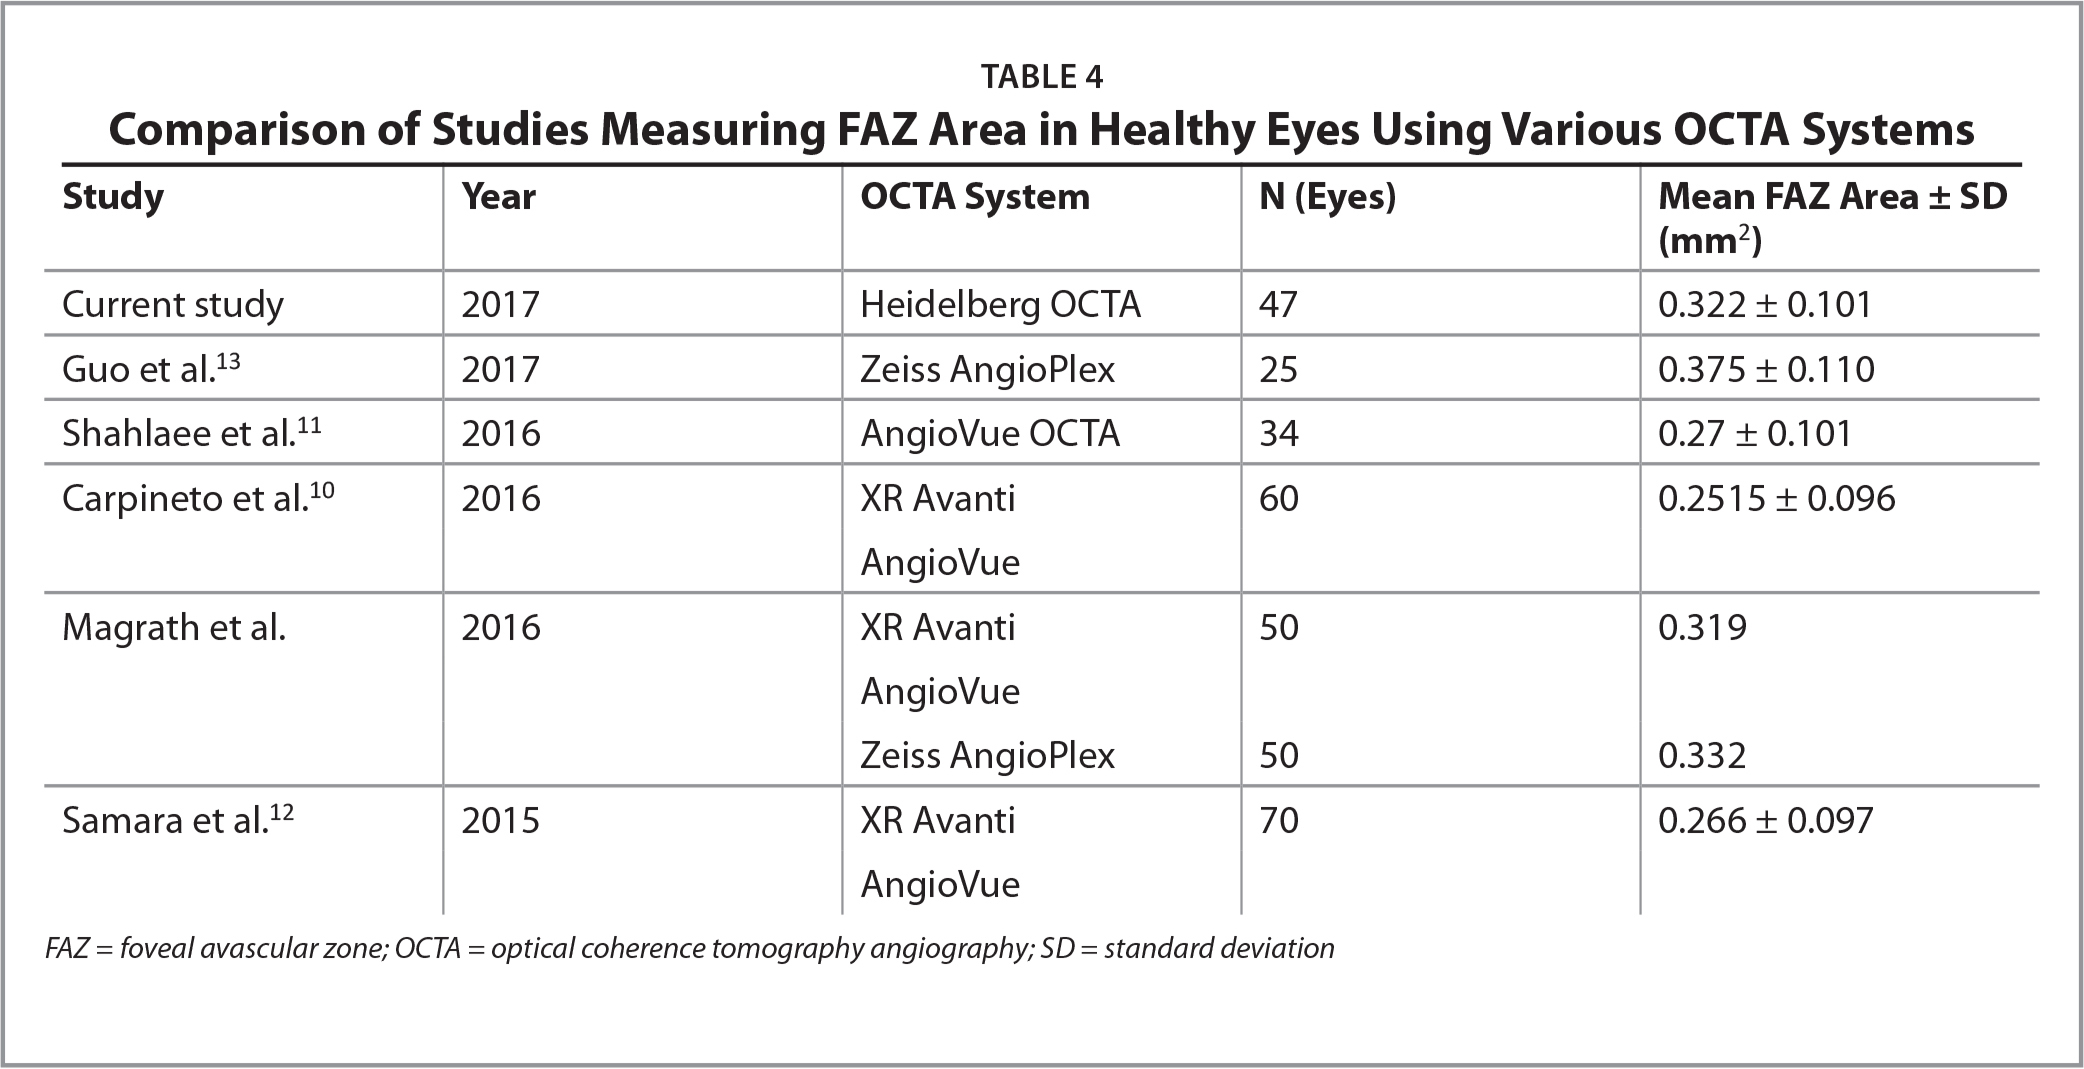 Comparison of Studies Measuring FAZ Area in Healthy Eyes Using Various OCTA Systems